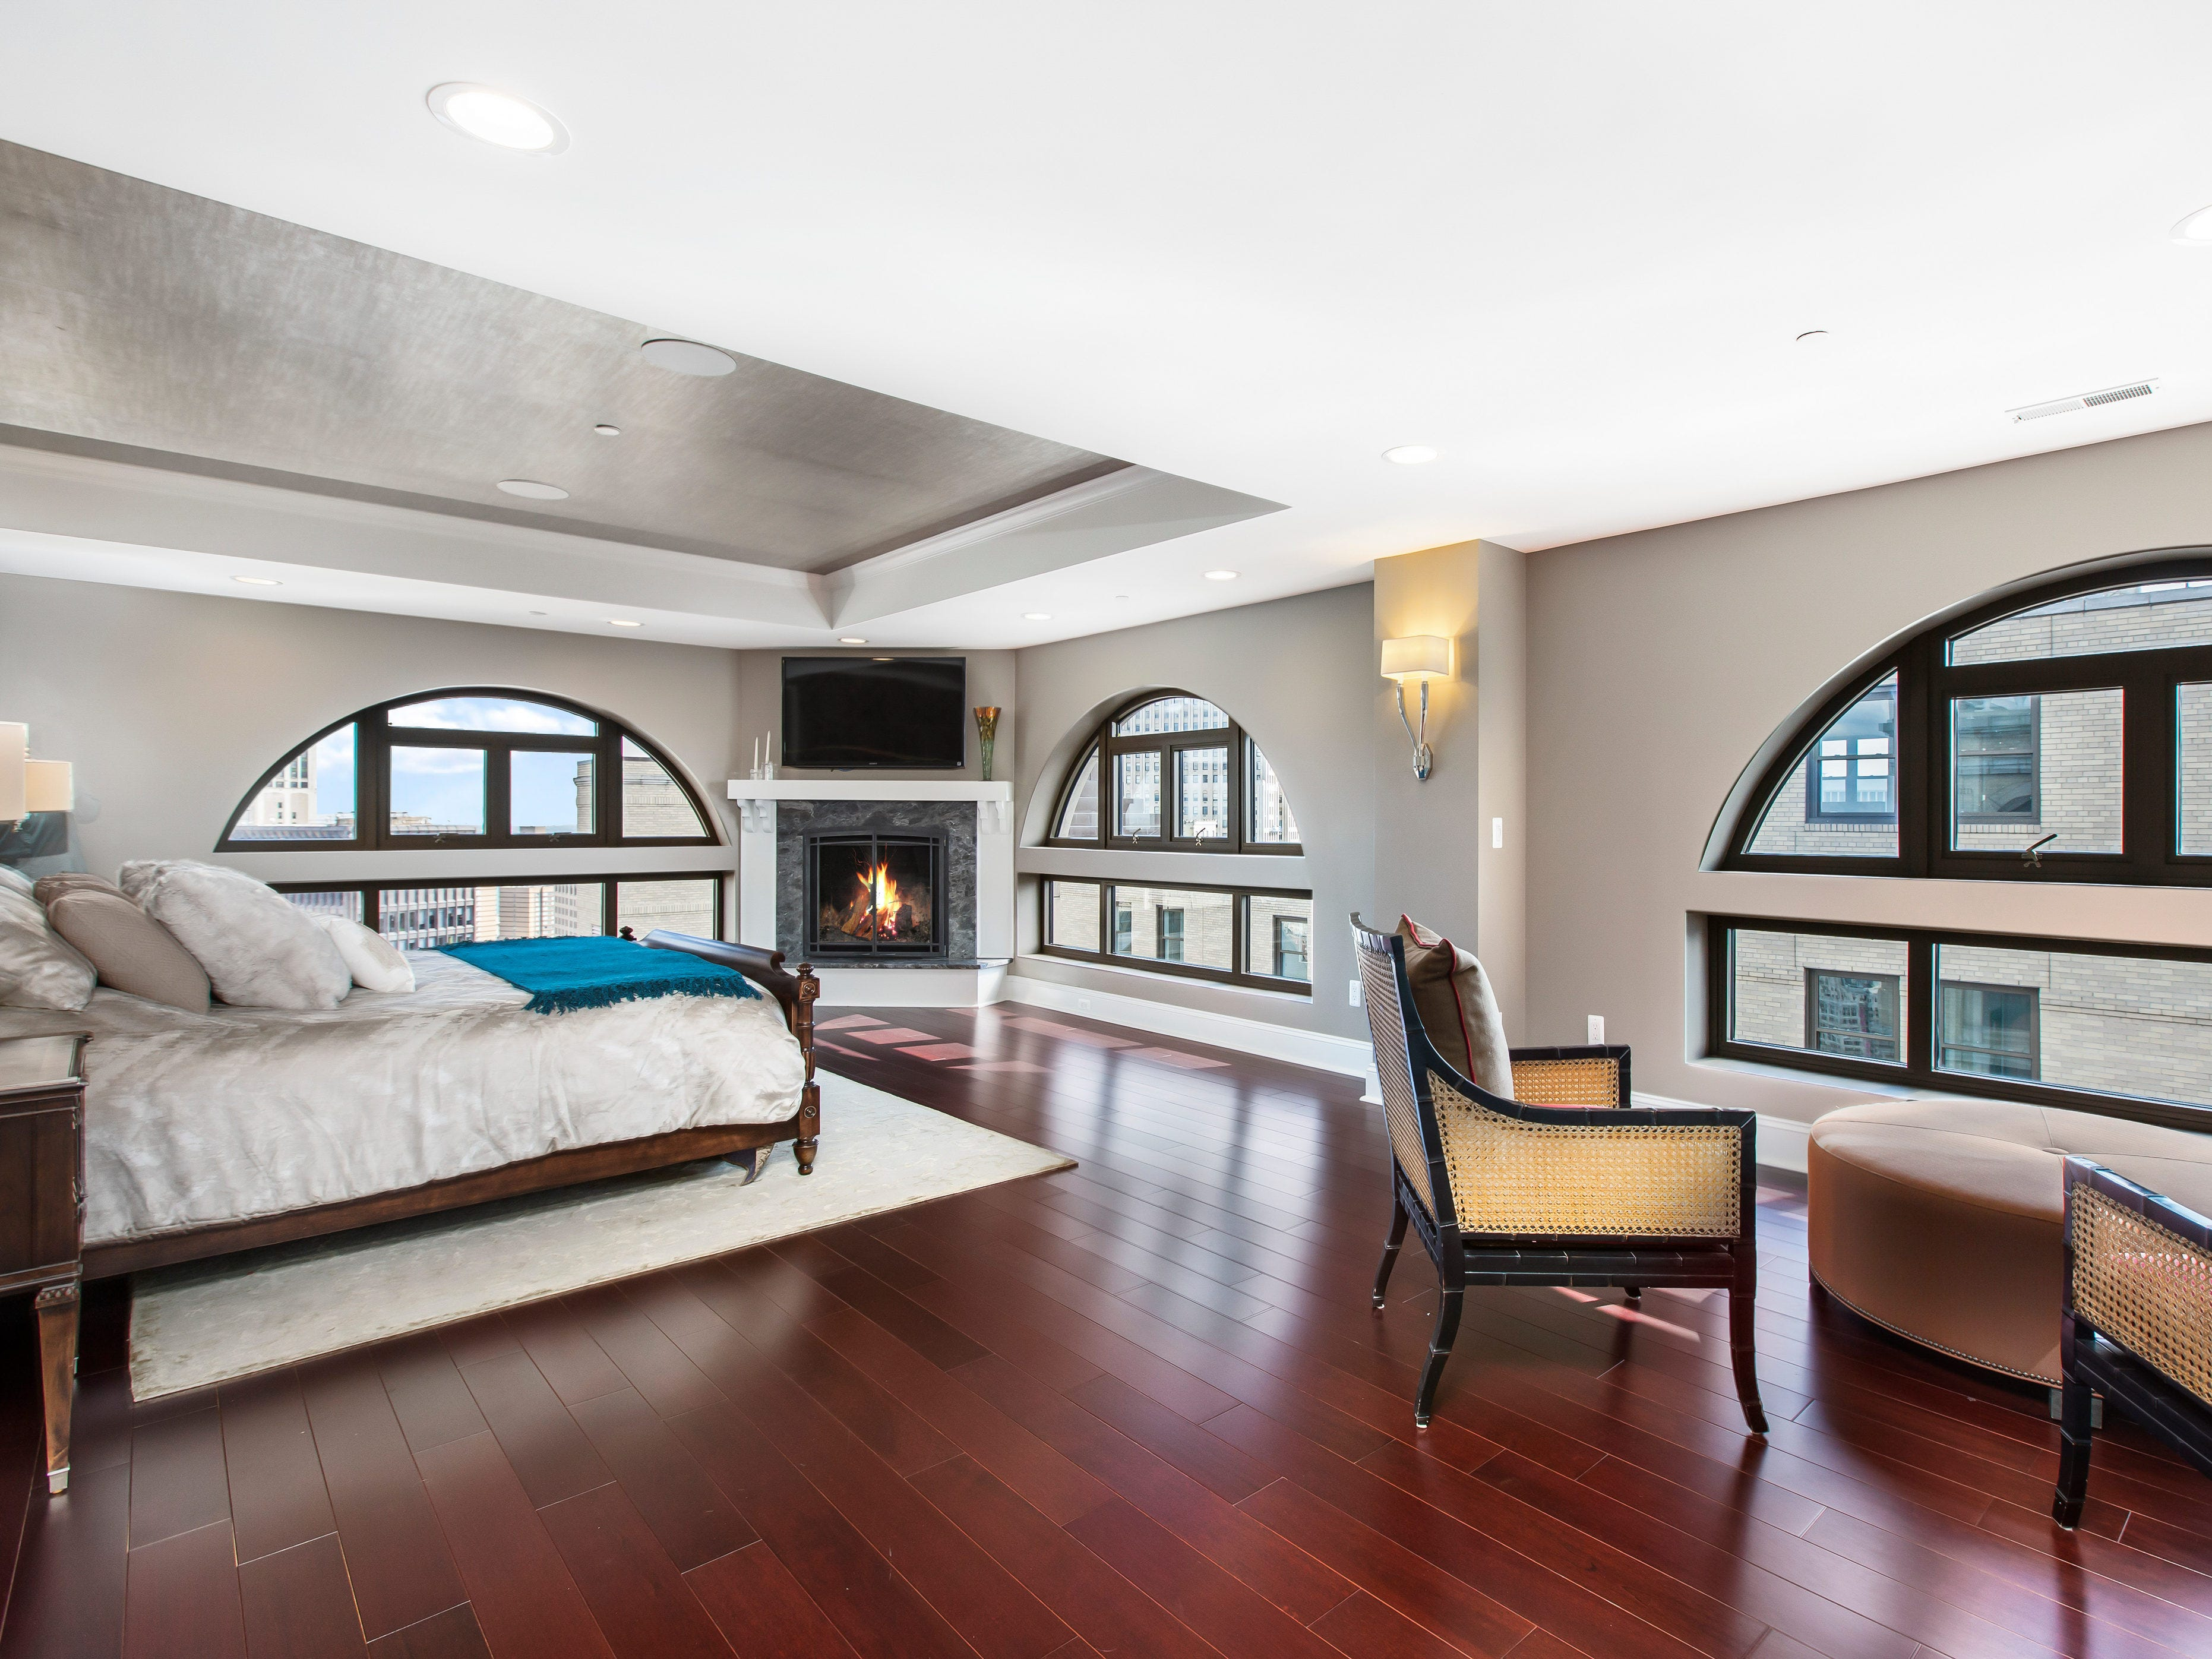 There is a fireplace and sitting area in this bedroom.